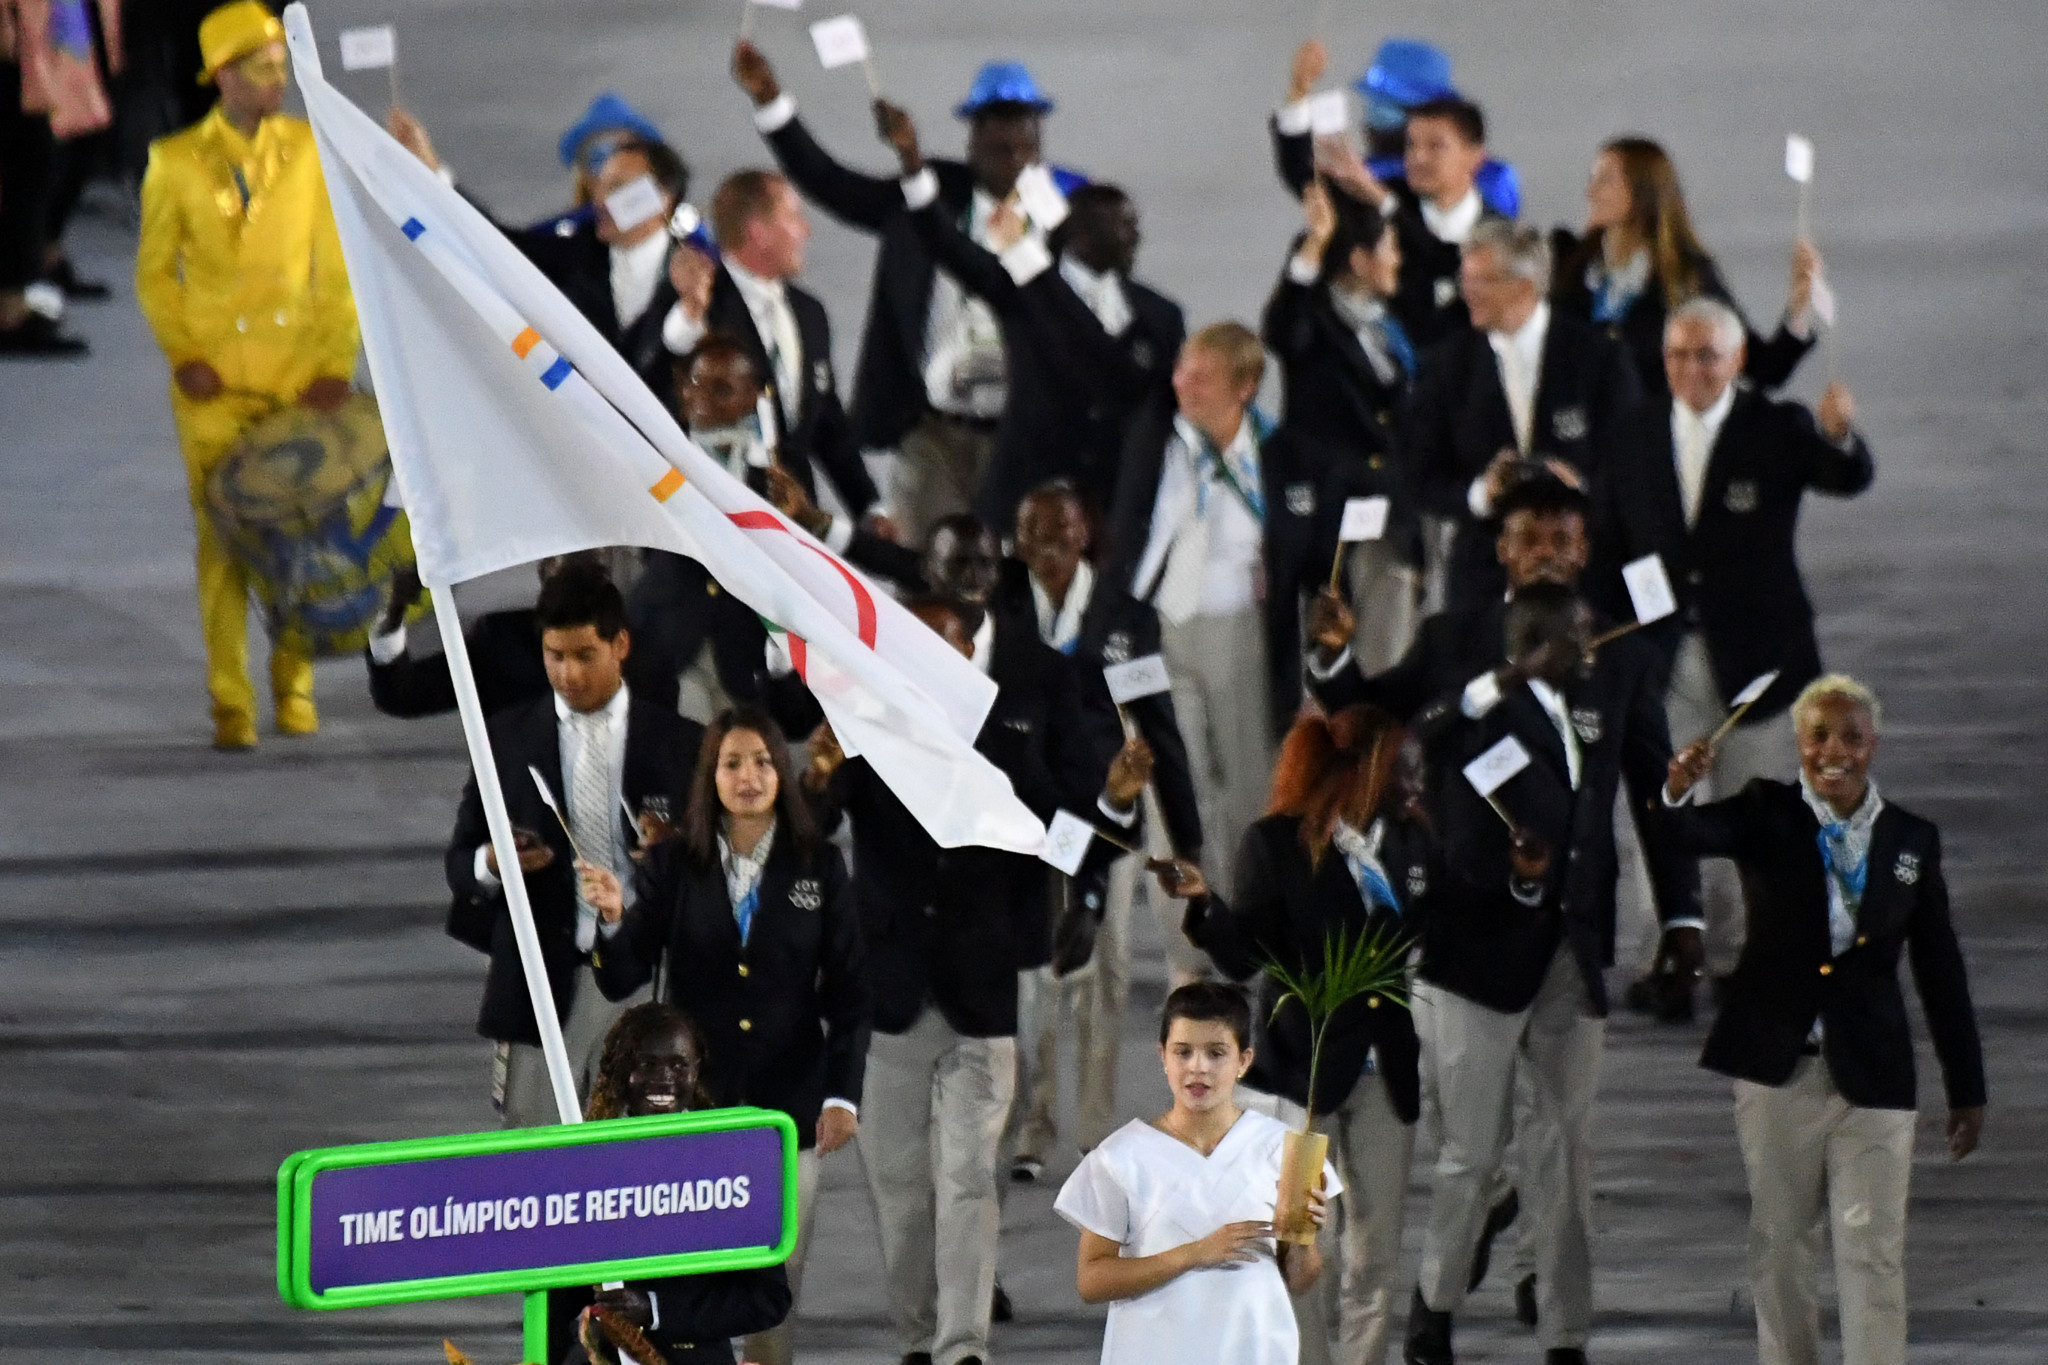 Rio 2016 saw the first refugees team at the Olympic Games ©Getty Images